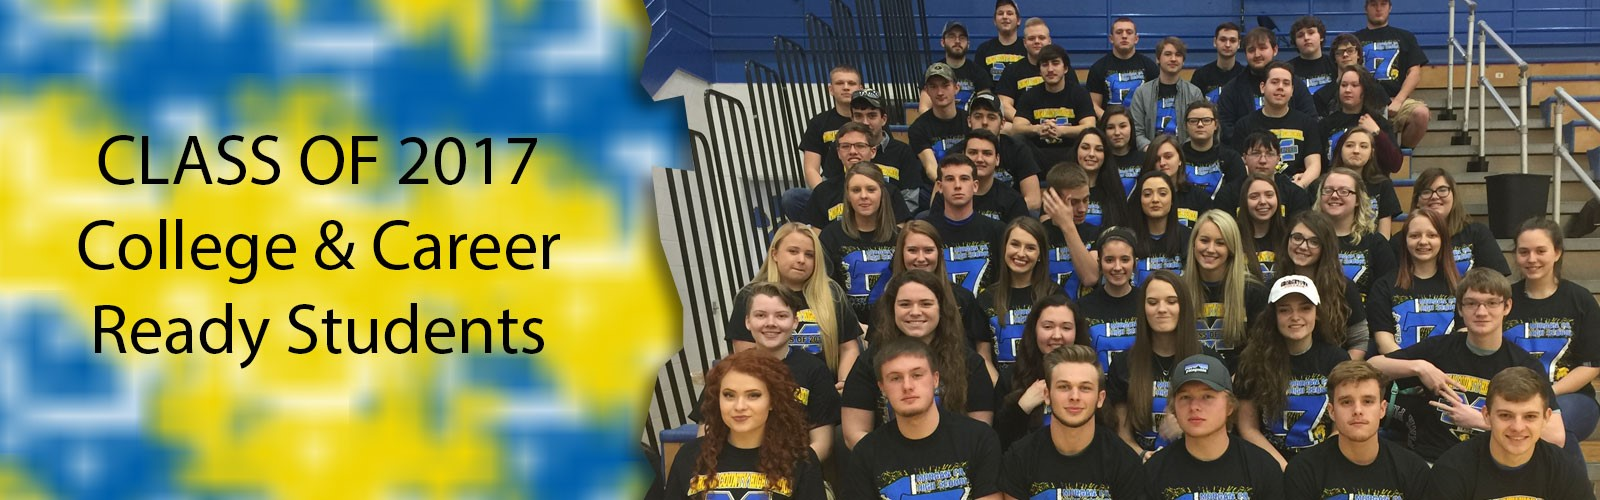 MCHS 2017 College and Career Ready Students